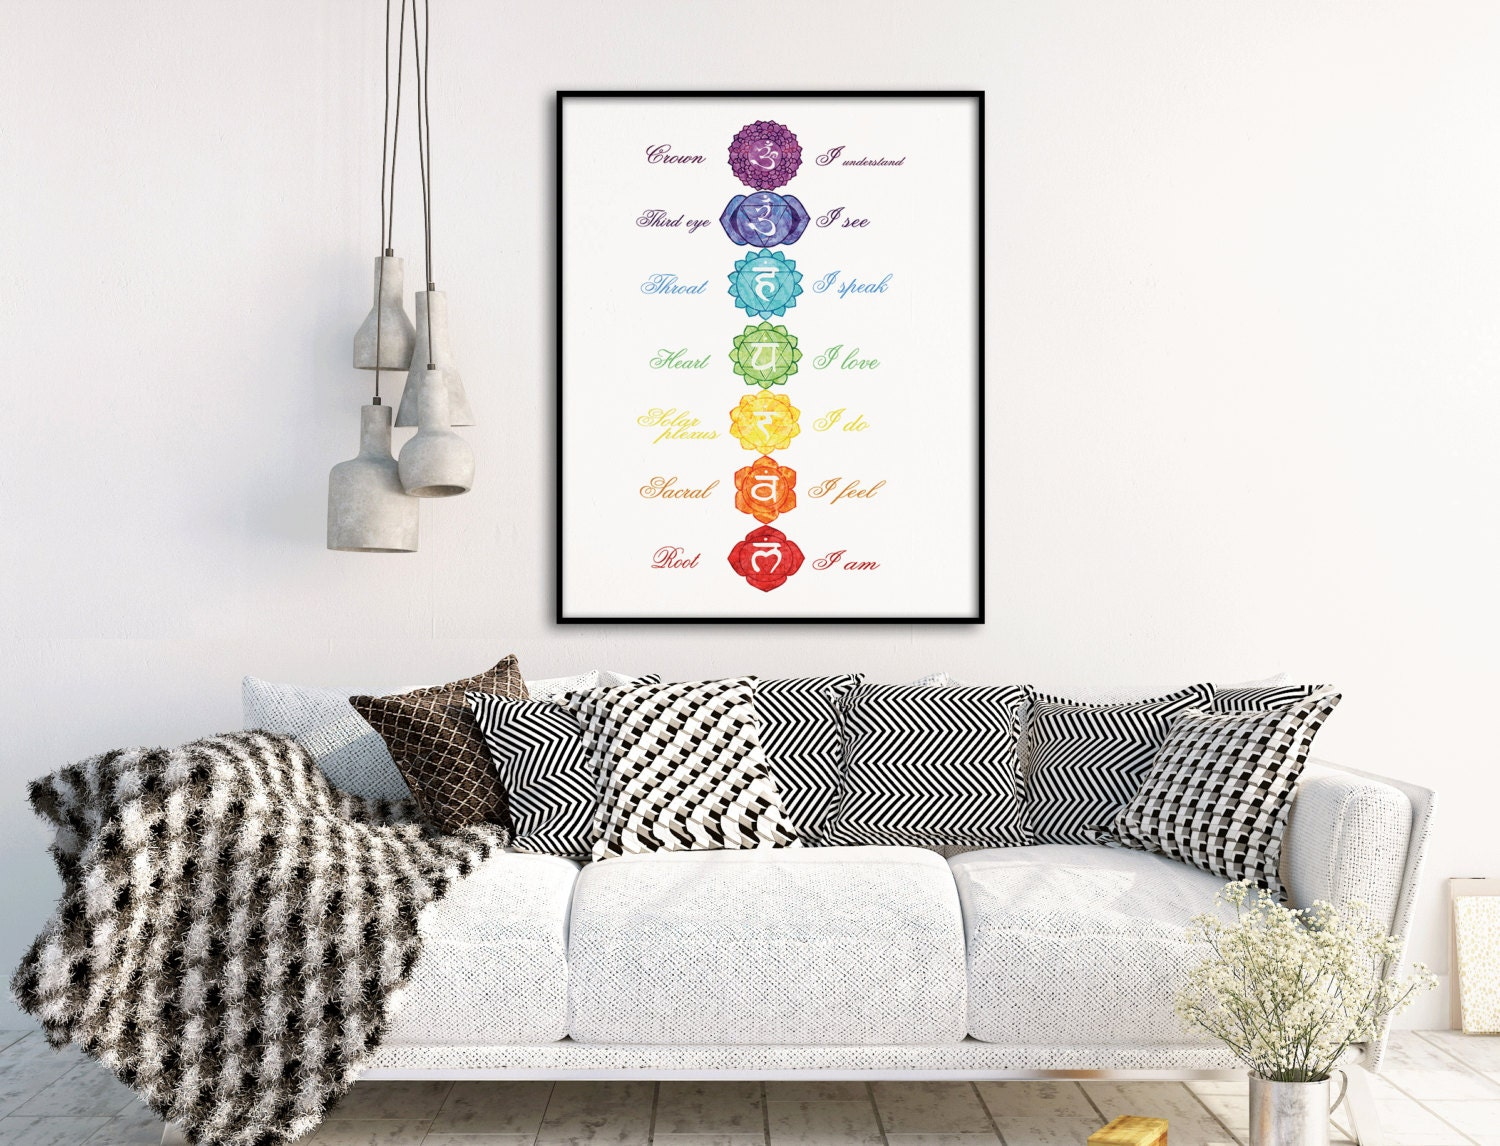 Meditation Decor Fair Chakra Meditation Wall Art Chakra Print Yoga Studio Decor Decorating Inspiration